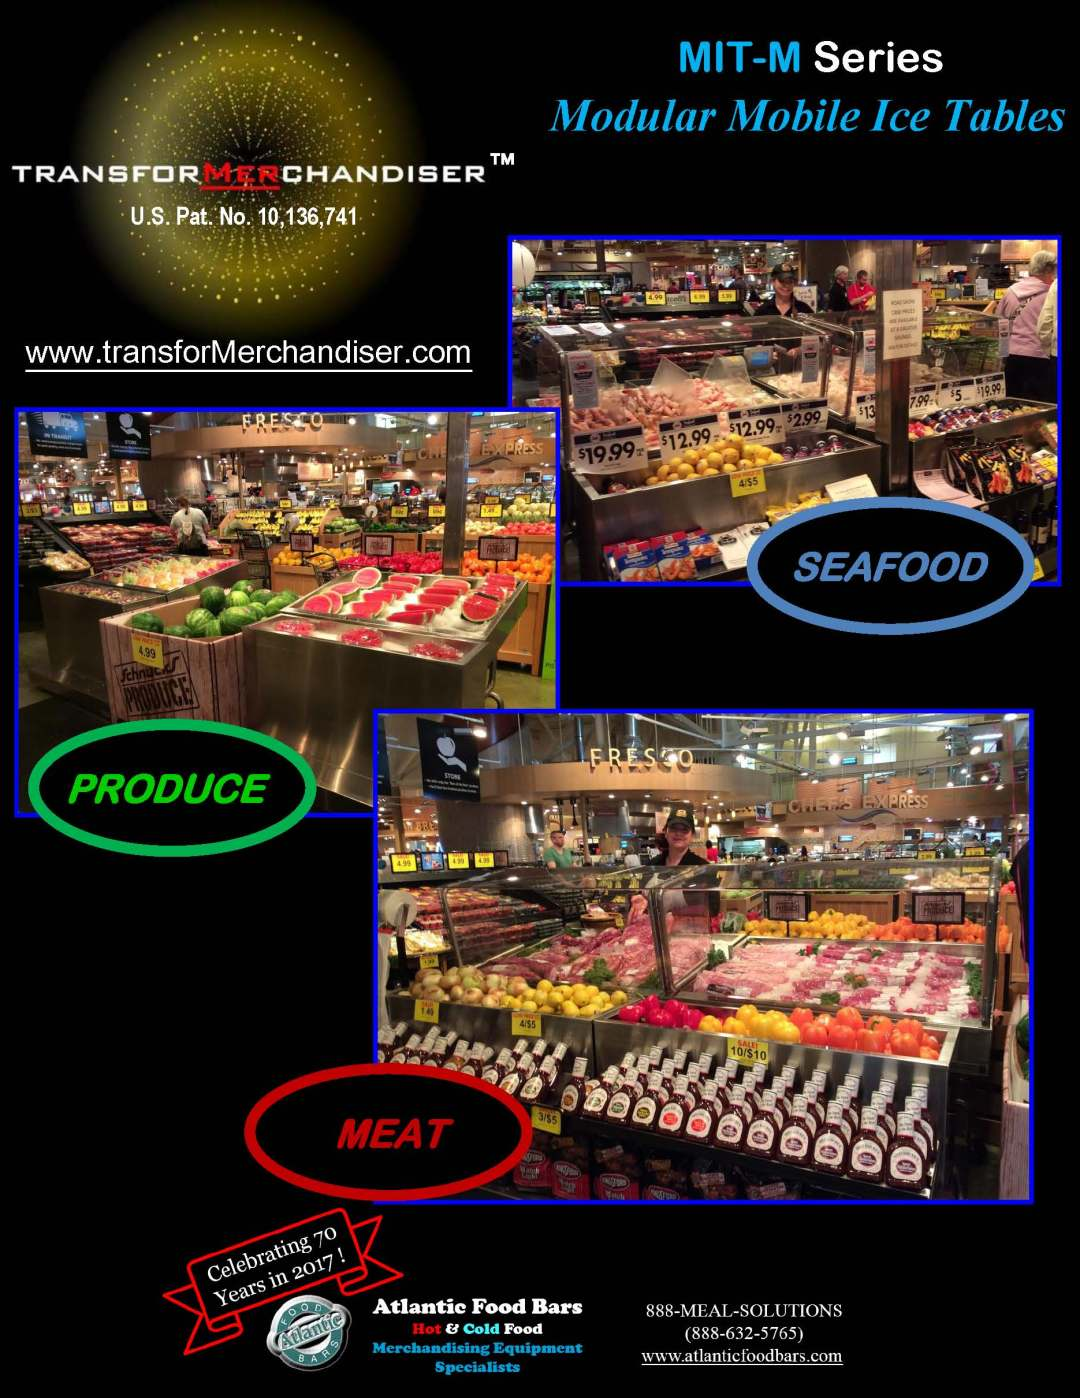 Atlantic Food Bars - Modular Mobile Ice Tables for Seafood, Meat or Produce - The transforMerchandiser MIT-M